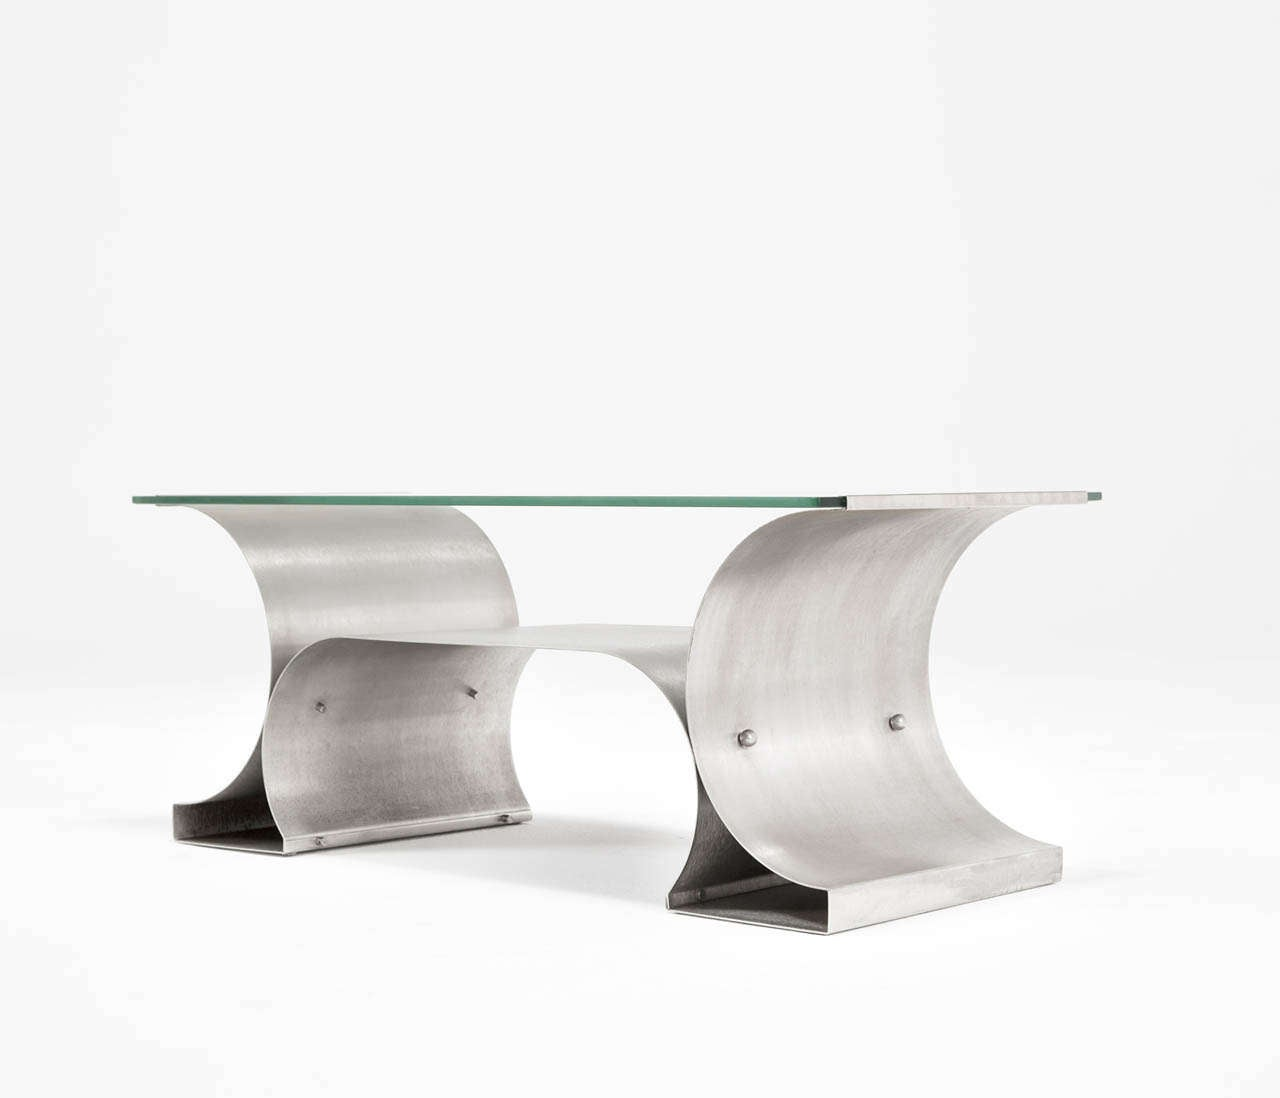 Michel Boyer Stainless Steel Coffee Table From The U0027X Seriesu0027 2